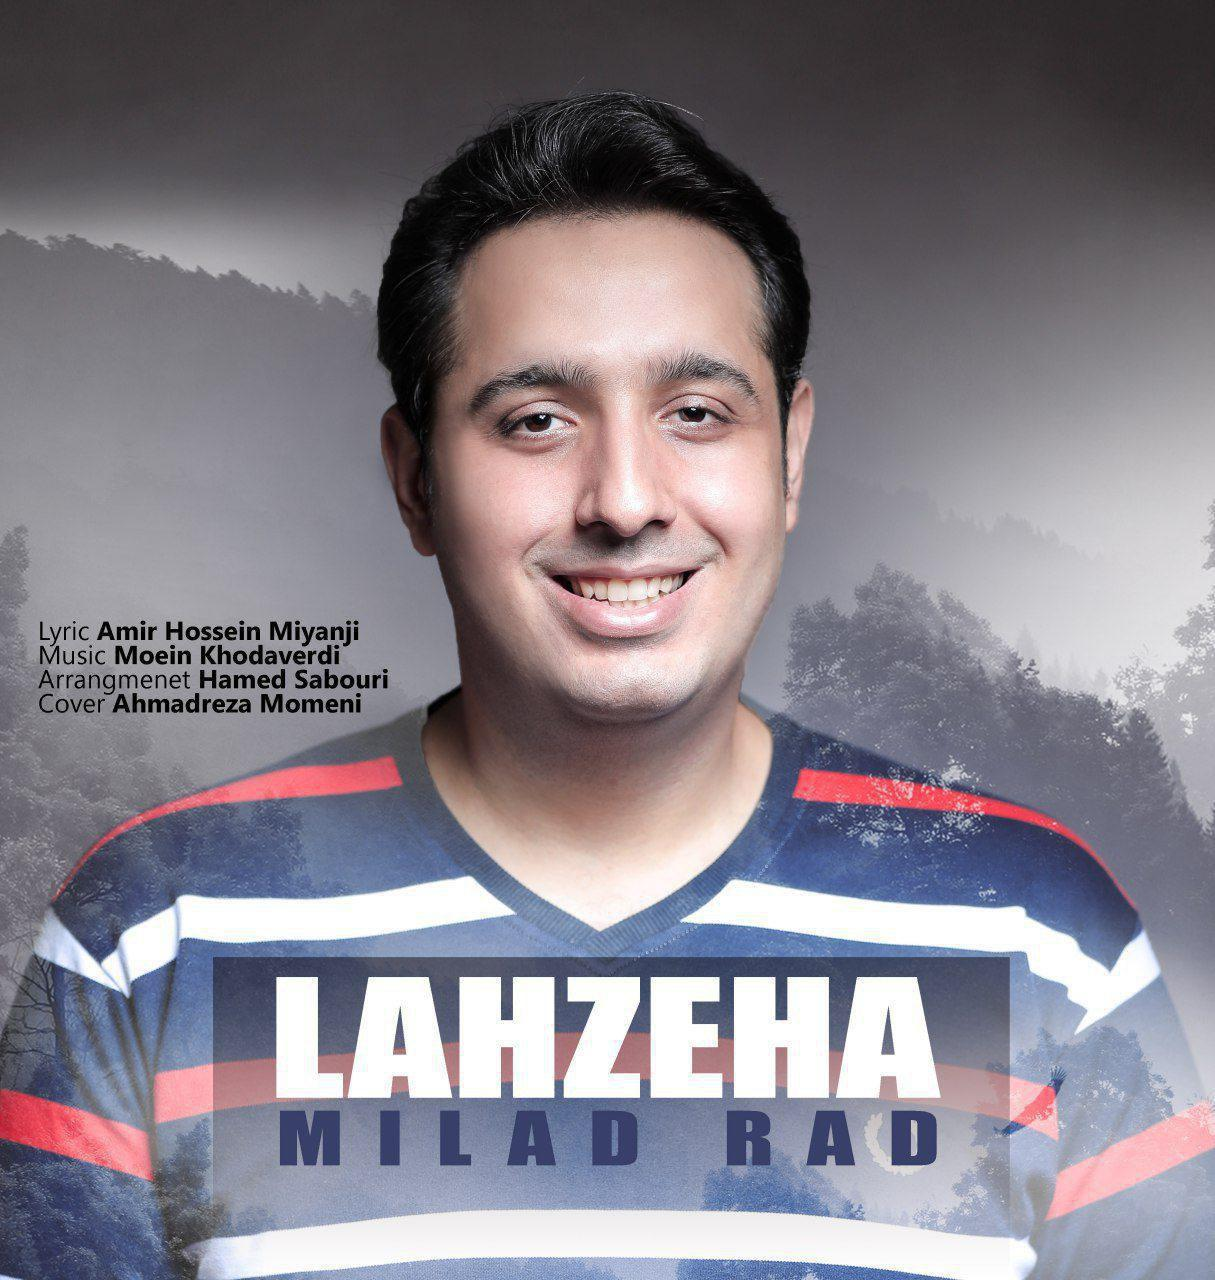 Download New Music, Download New Music Milad Rad, Download New Music Milad Rad Lahzeha, دانلود آهنگ, دانلود آهنگ جدید, دانلود آهنگ جدید ایرانی, دانلود آهنگ غمگین, دانلود آهنگ لحظه ها, دانلود آهنگ میلاد راد, متن آهنگ لحظه ها میلاد راد